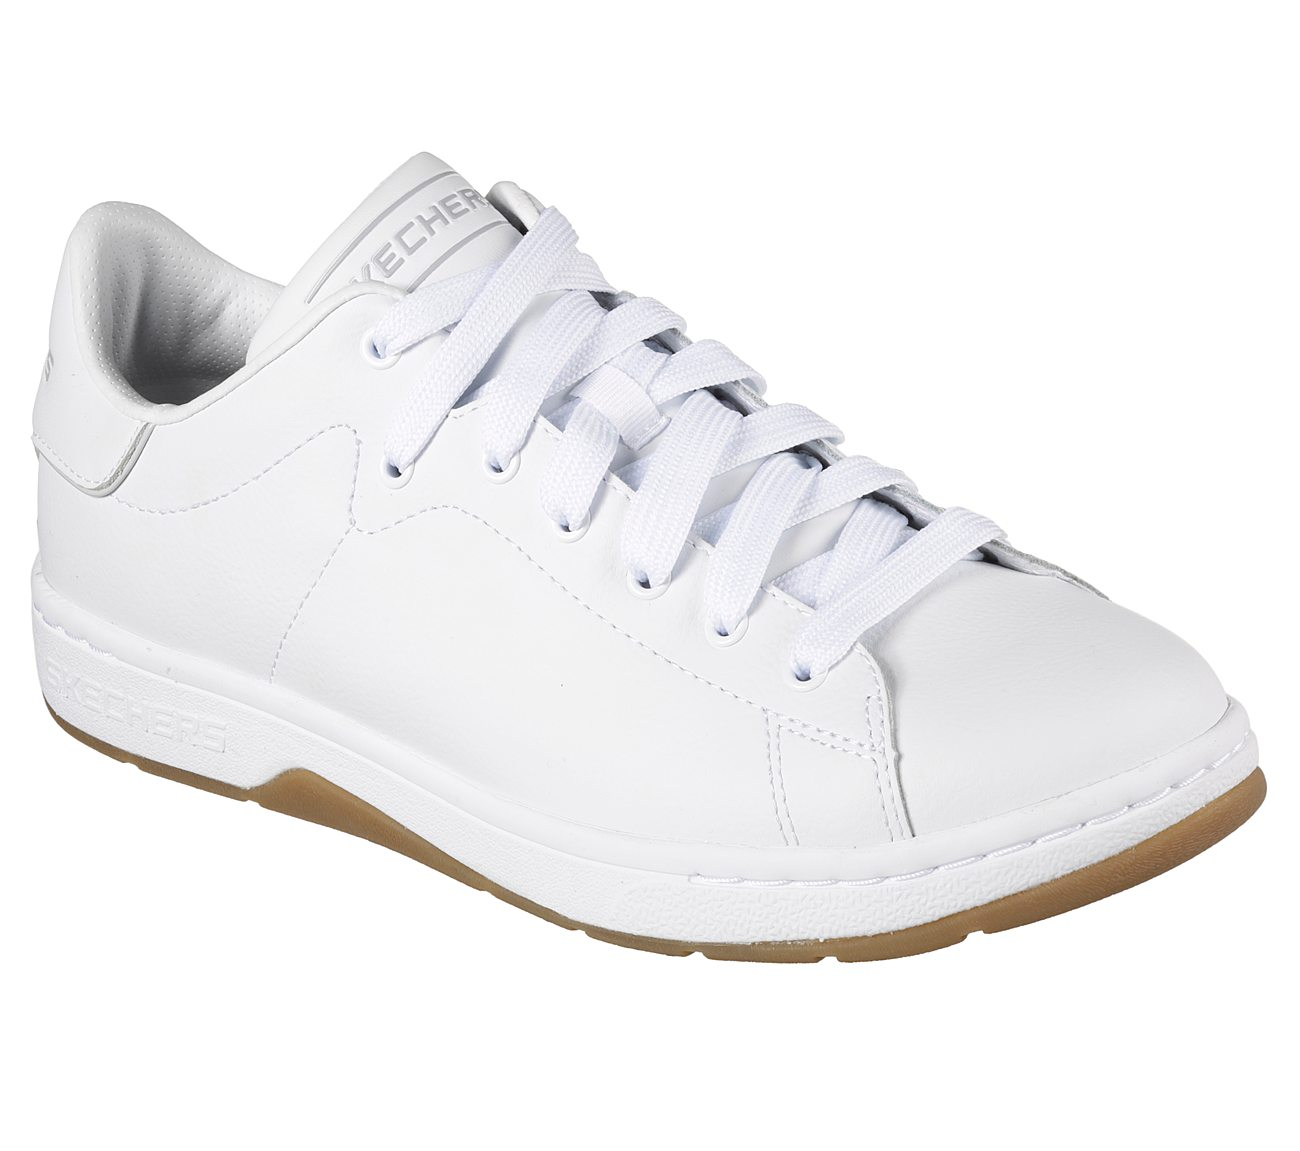 Skechers Alpha Lite Sproles White Black Mens Lace Up Sneakers